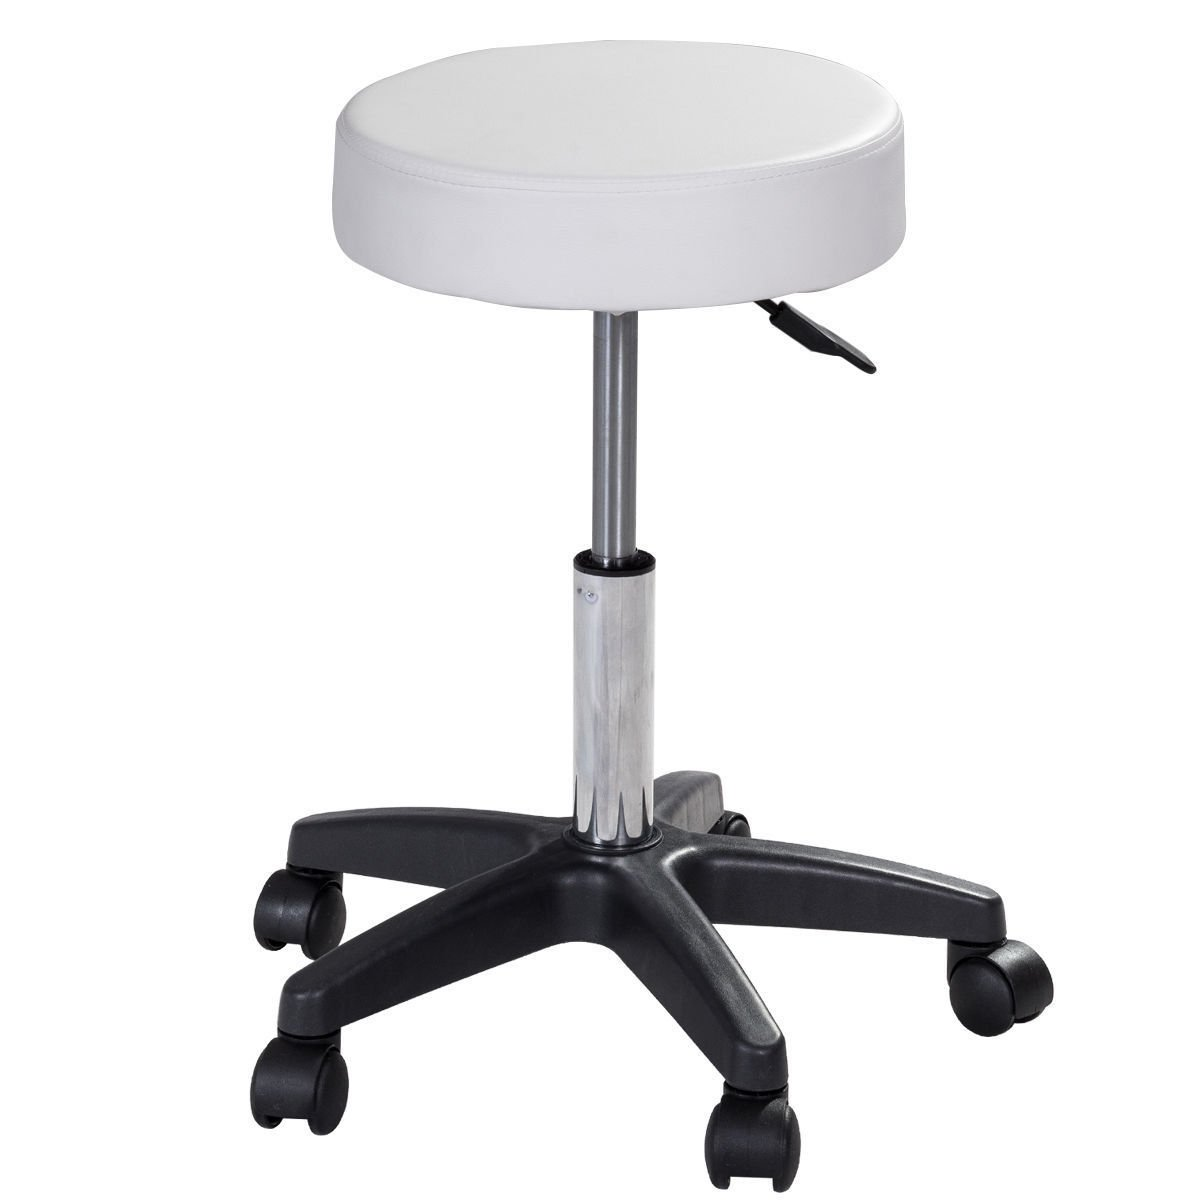 G&GOnline 1 PC adjustable Hydraulic Rolling Swivel Bar Stool Massage Spa Beauty Seat White